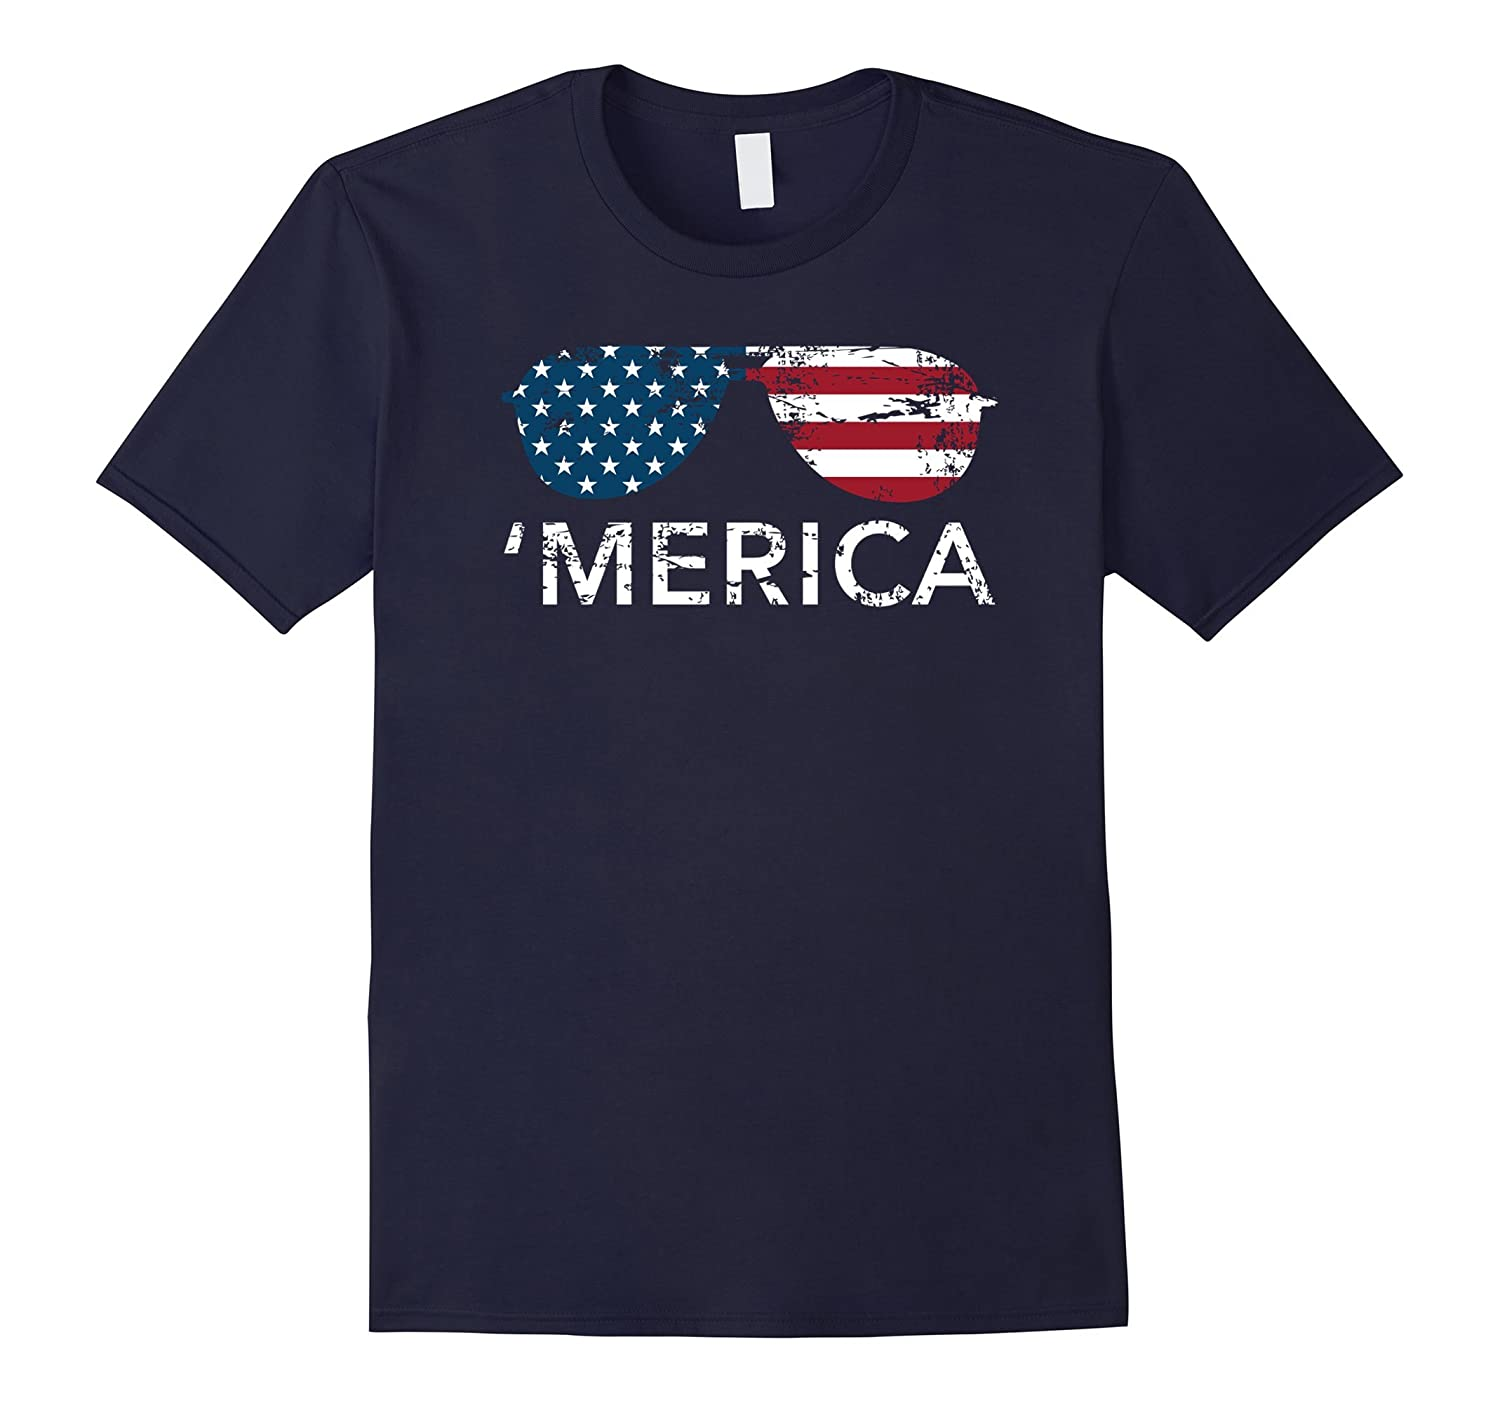 'Merica sunglasses USA Patriotic Memorial Day tee shirt-BN